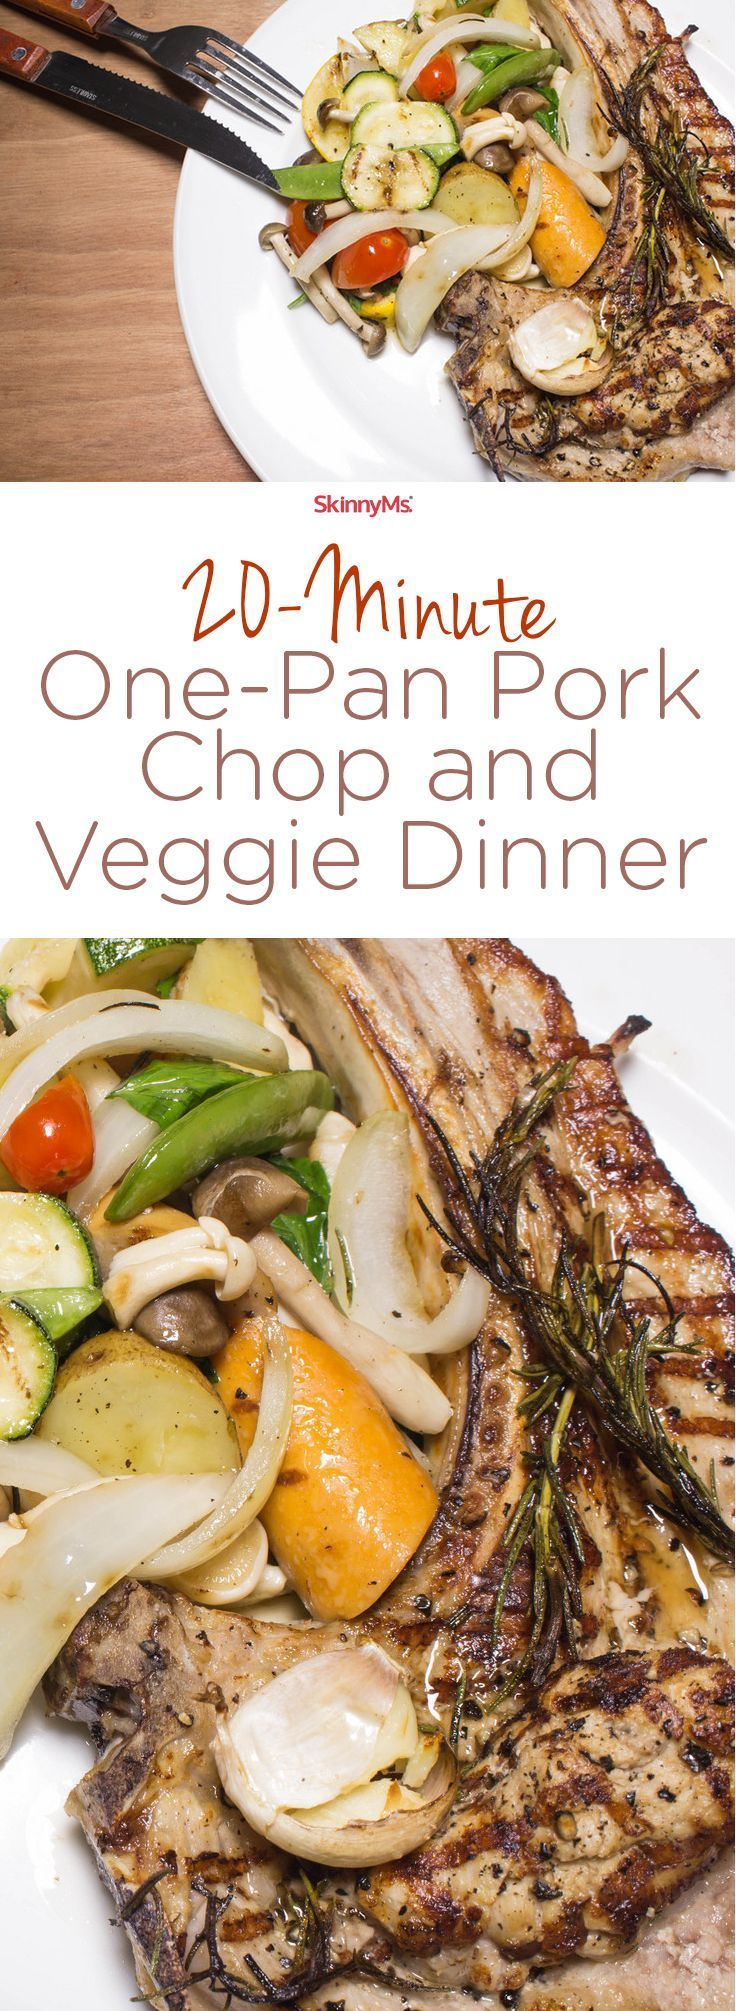 1514 best healthy family meals images on pinterest healthy eating 1514 best healthy family meals images on pinterest healthy eating habits healthy meals and clean eating recipes forumfinder Image collections